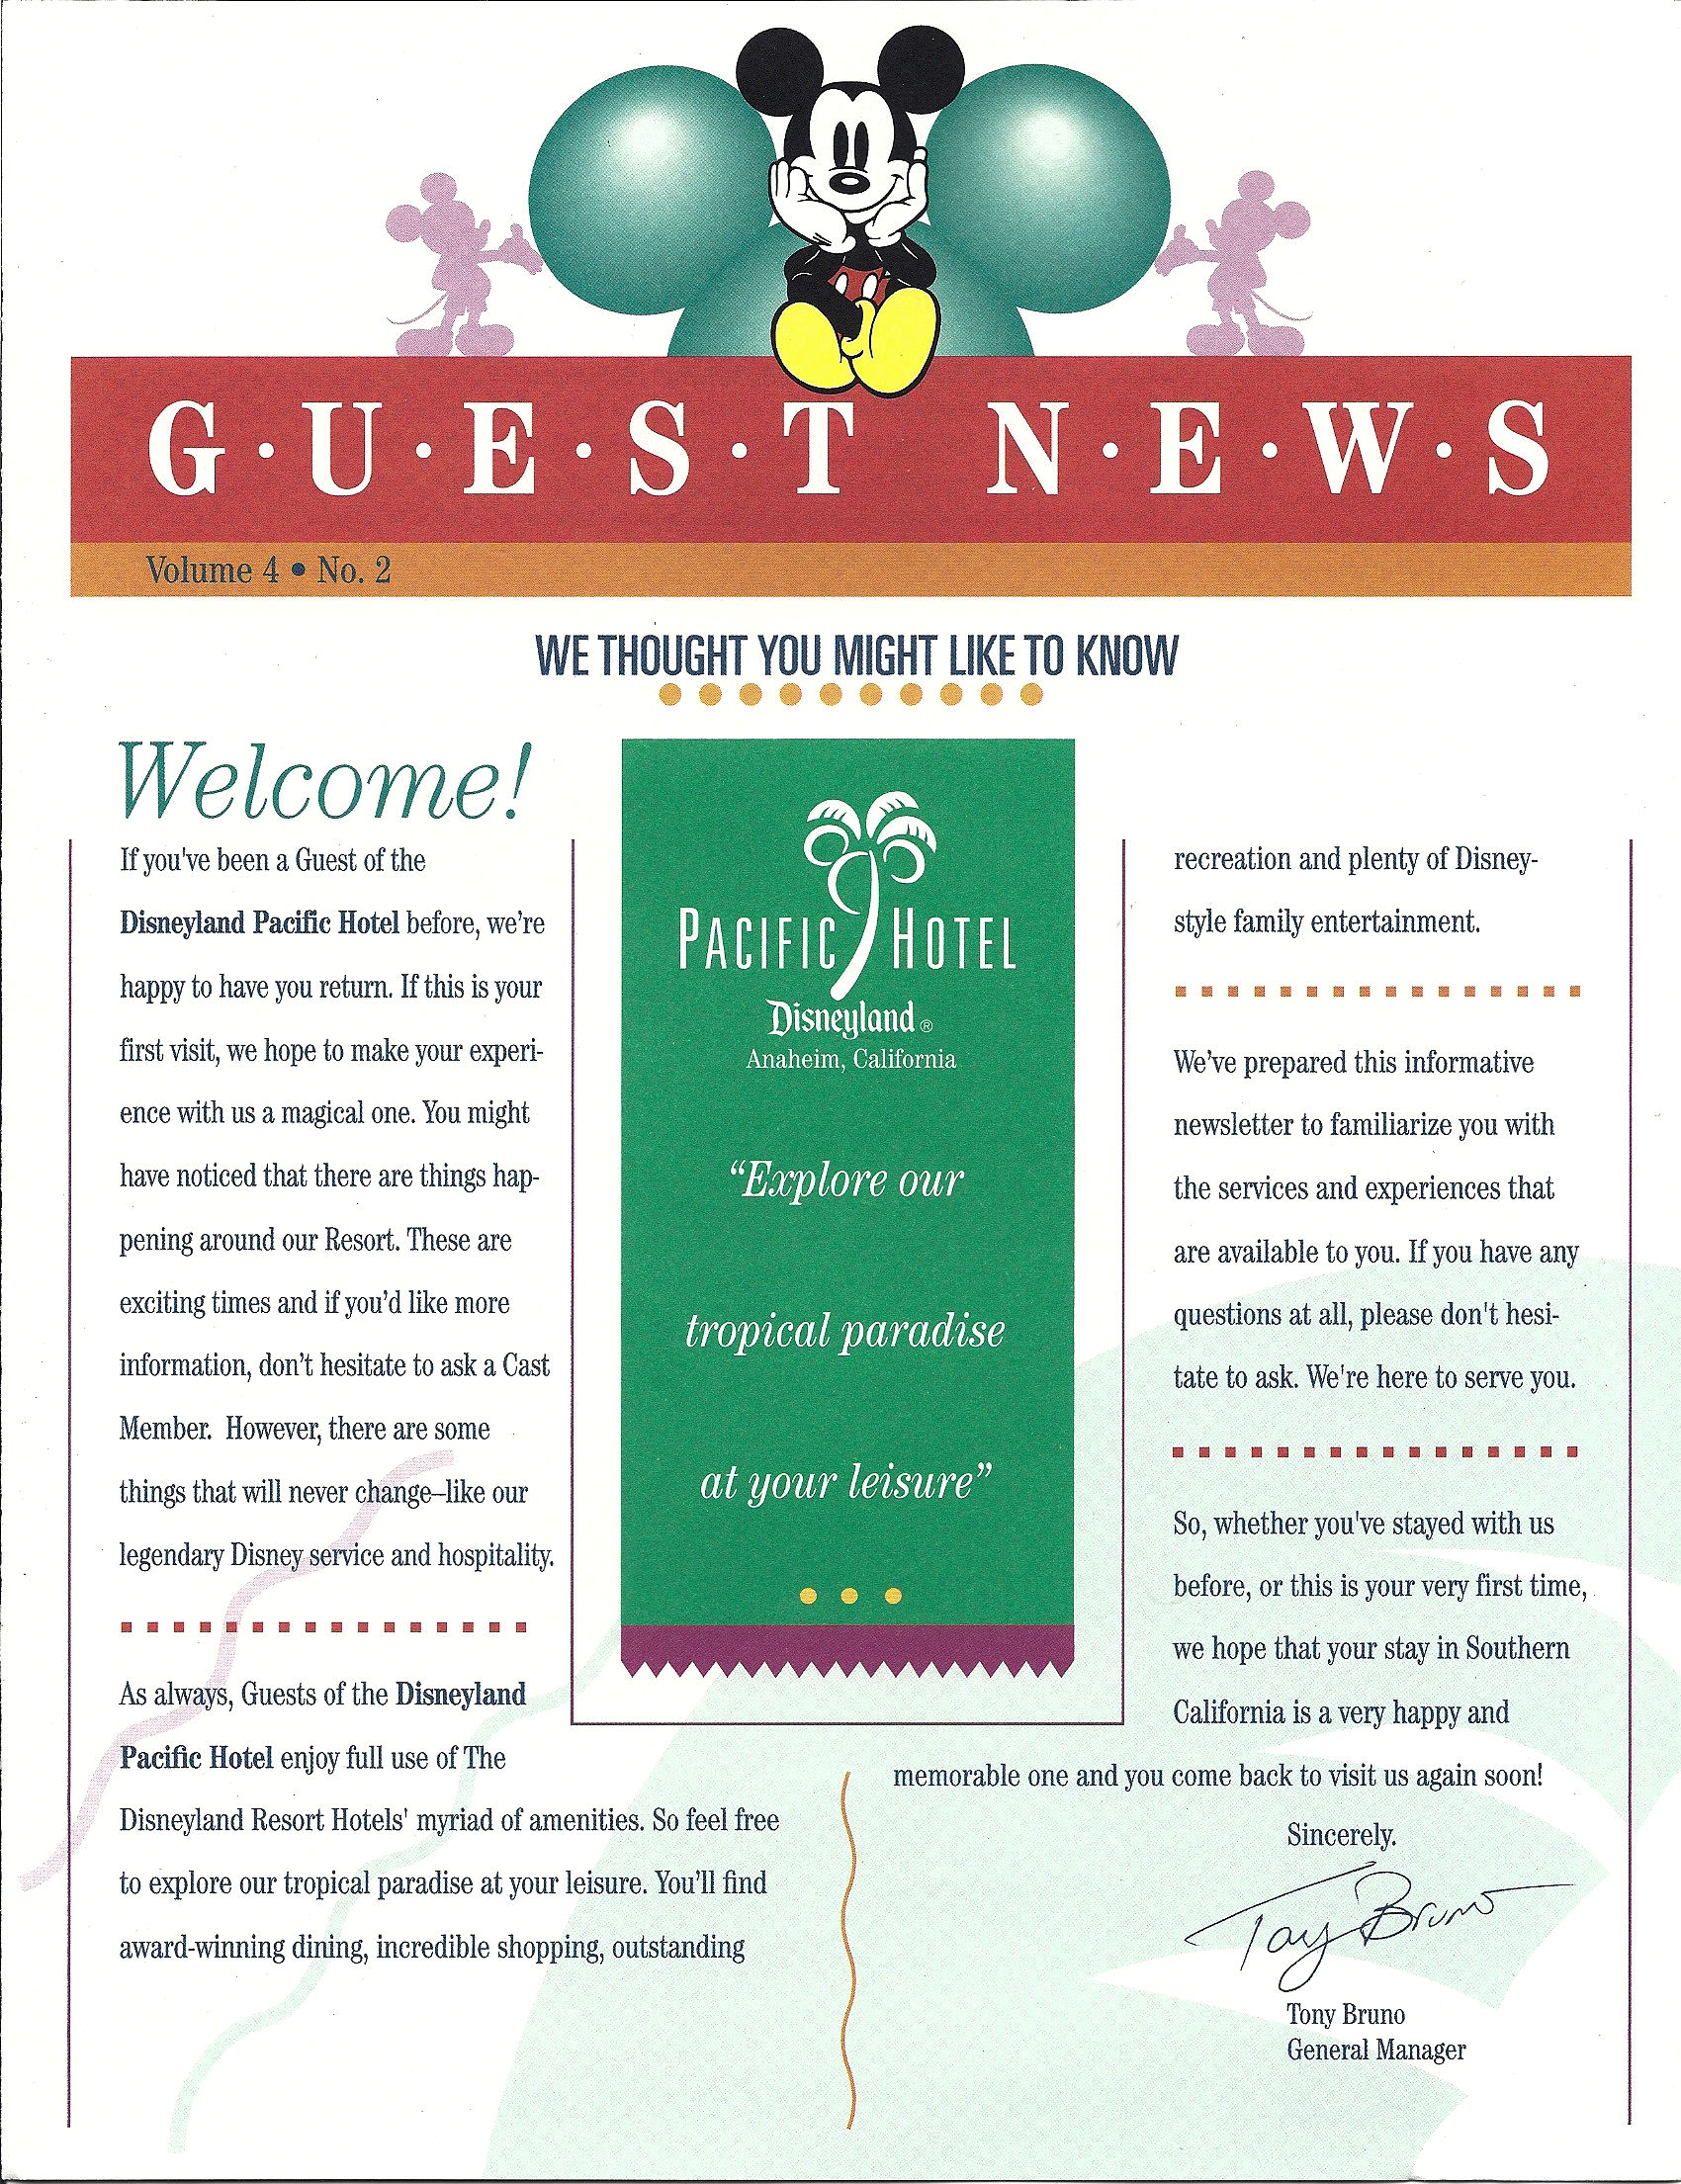 A Guest News flyer from the Pacific Hotel at the Disneyland Resort.